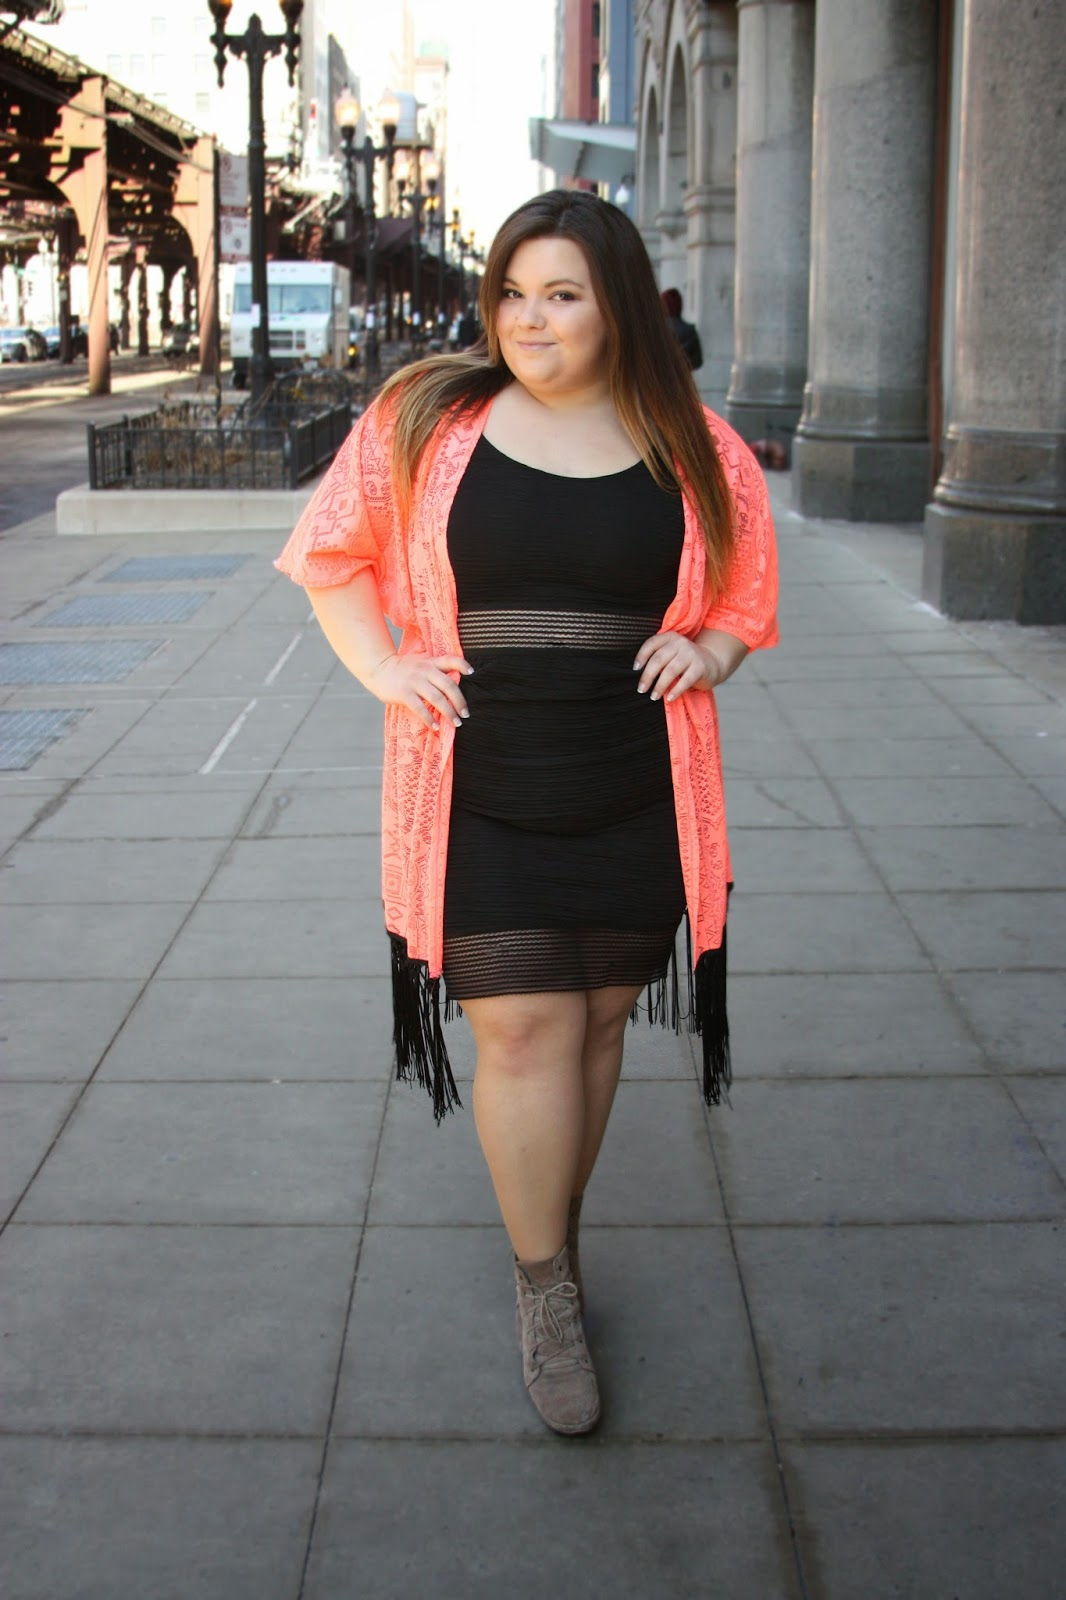 BRIGHT COLORED kimono, Charlotte Russe, Charlotte Russe plus size clothing line, Chicago, LITTLE BLACK DRESS, maxi skirt, Natalie Craig, natalie in the city, plus size, plus size fashion blogger, chicago, kimono, fringe, ankle boots, booties, see-through, fatshion, curvy women, bbw, summer bright color